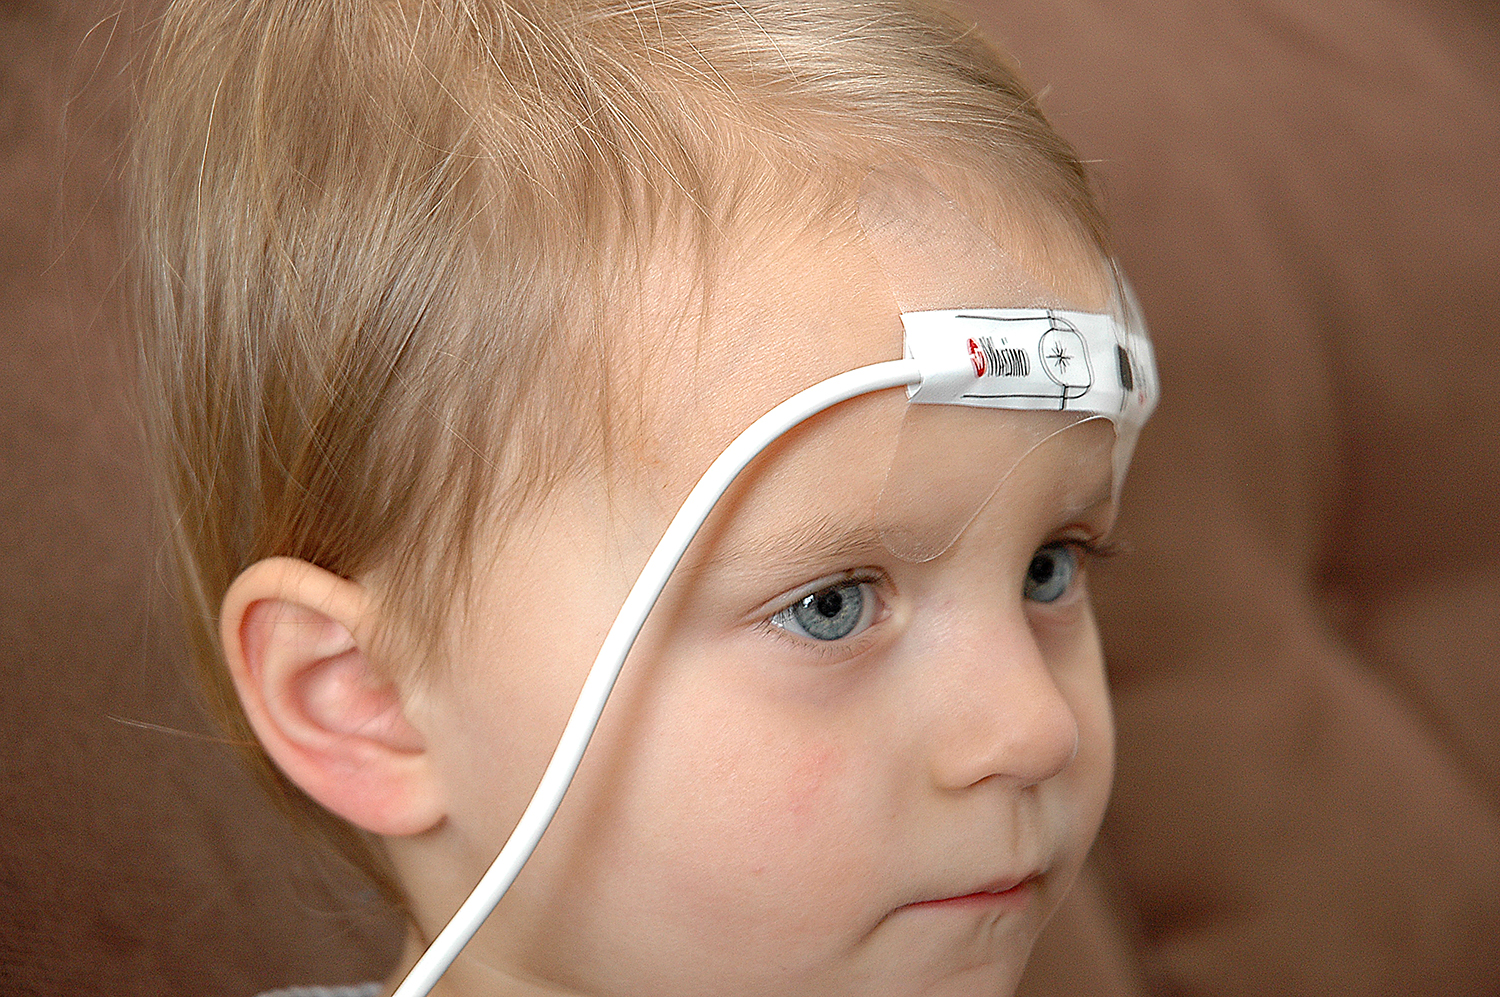 Pulse oximeter with sensor taped across forehead